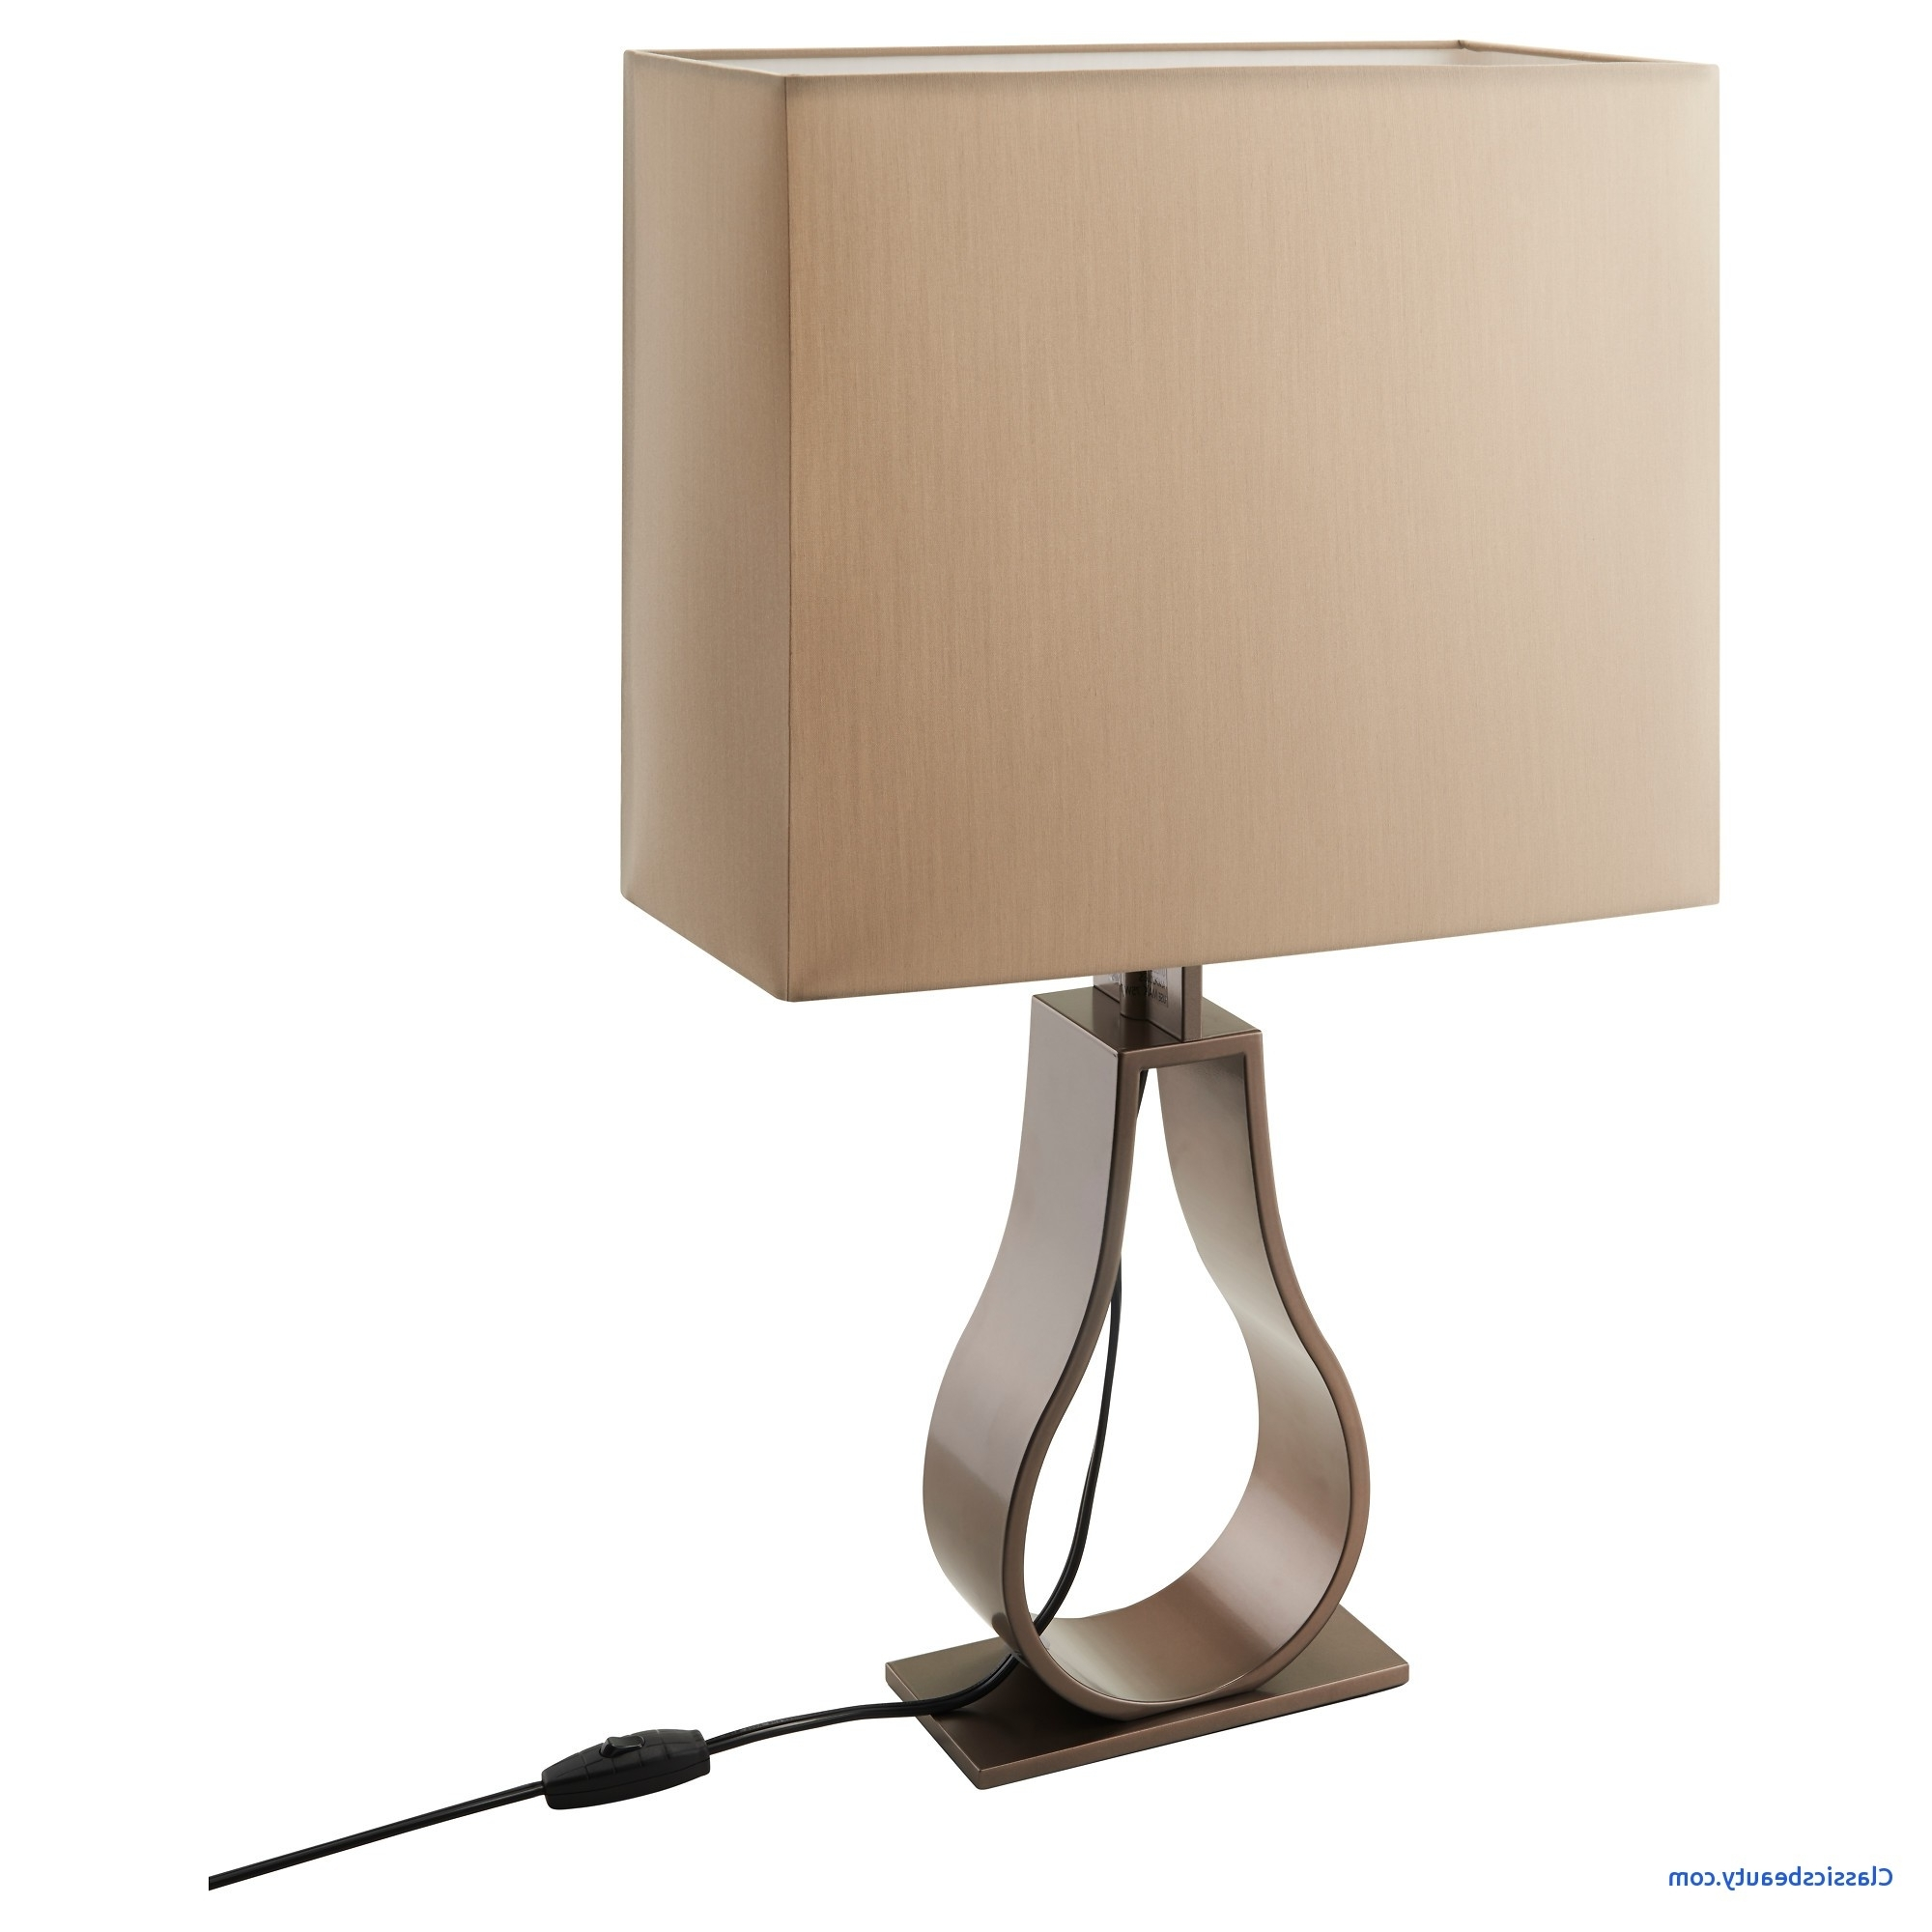 Top 55 Splendid Walmart Floor Lamps Ceramic Table For Living Room Throughout Latest Walmart Living Room Table Lamps (View 13 of 20)